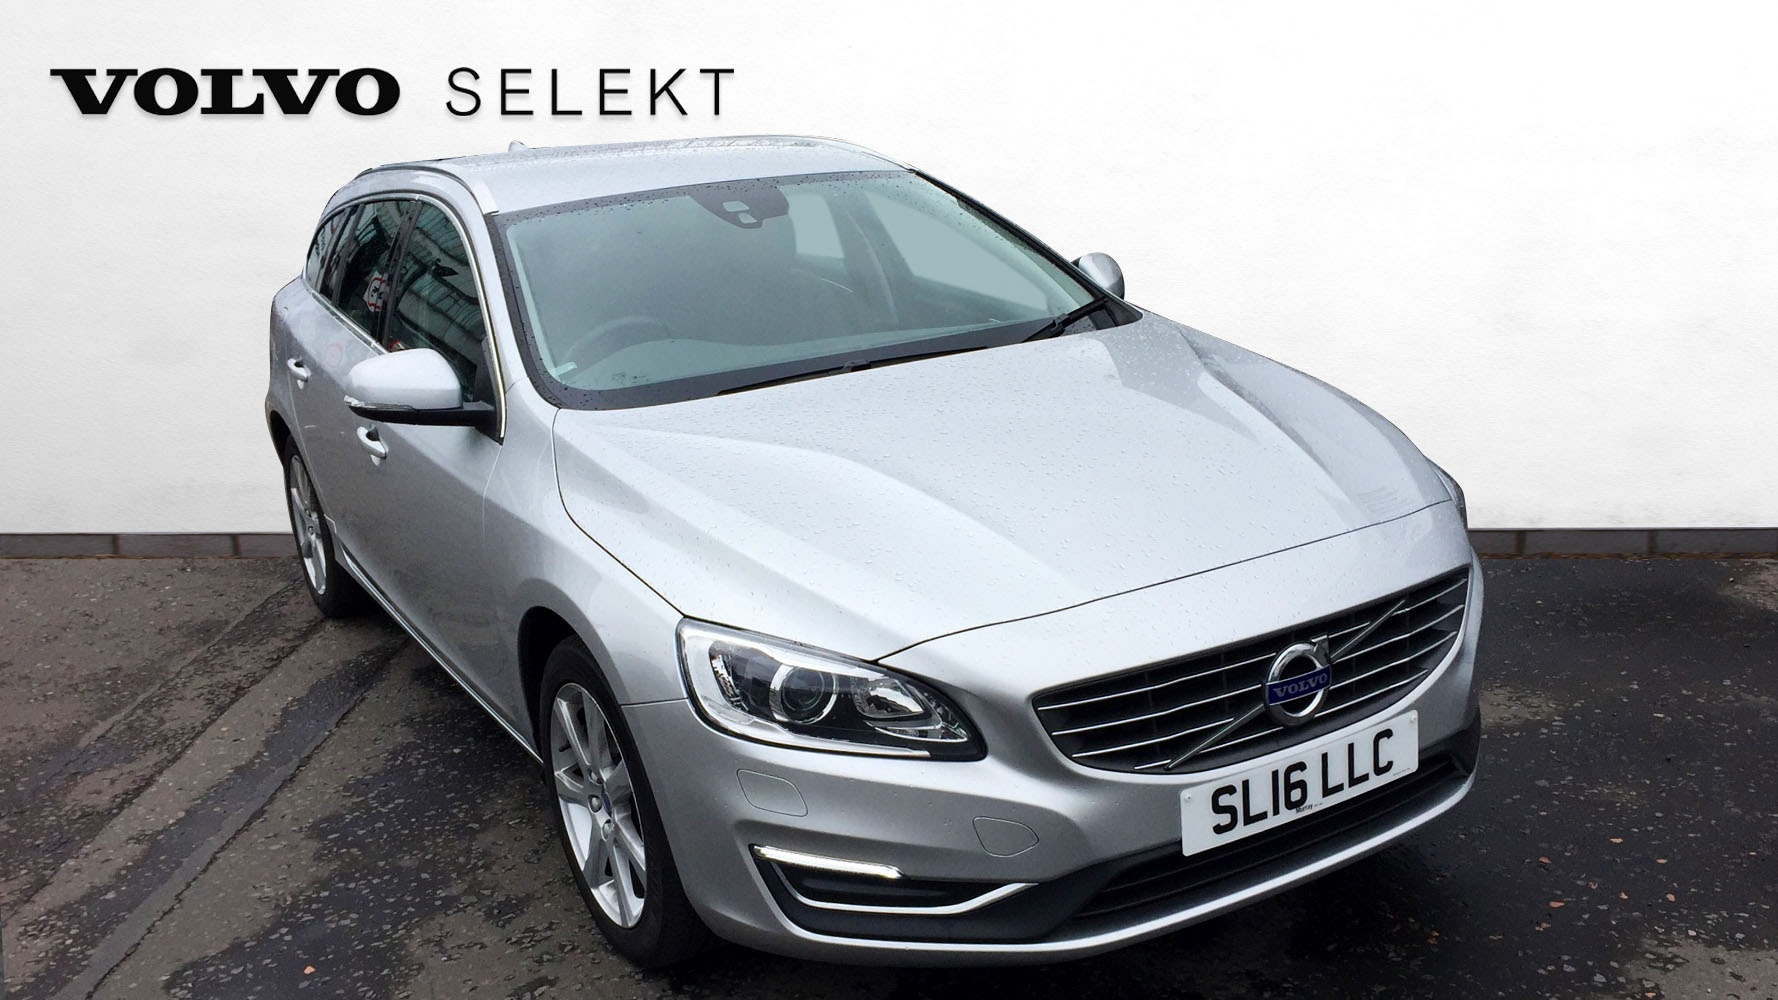 volvo v60 d4 se lux nav used vehicle by murray sighthill edinburgh. Black Bedroom Furniture Sets. Home Design Ideas